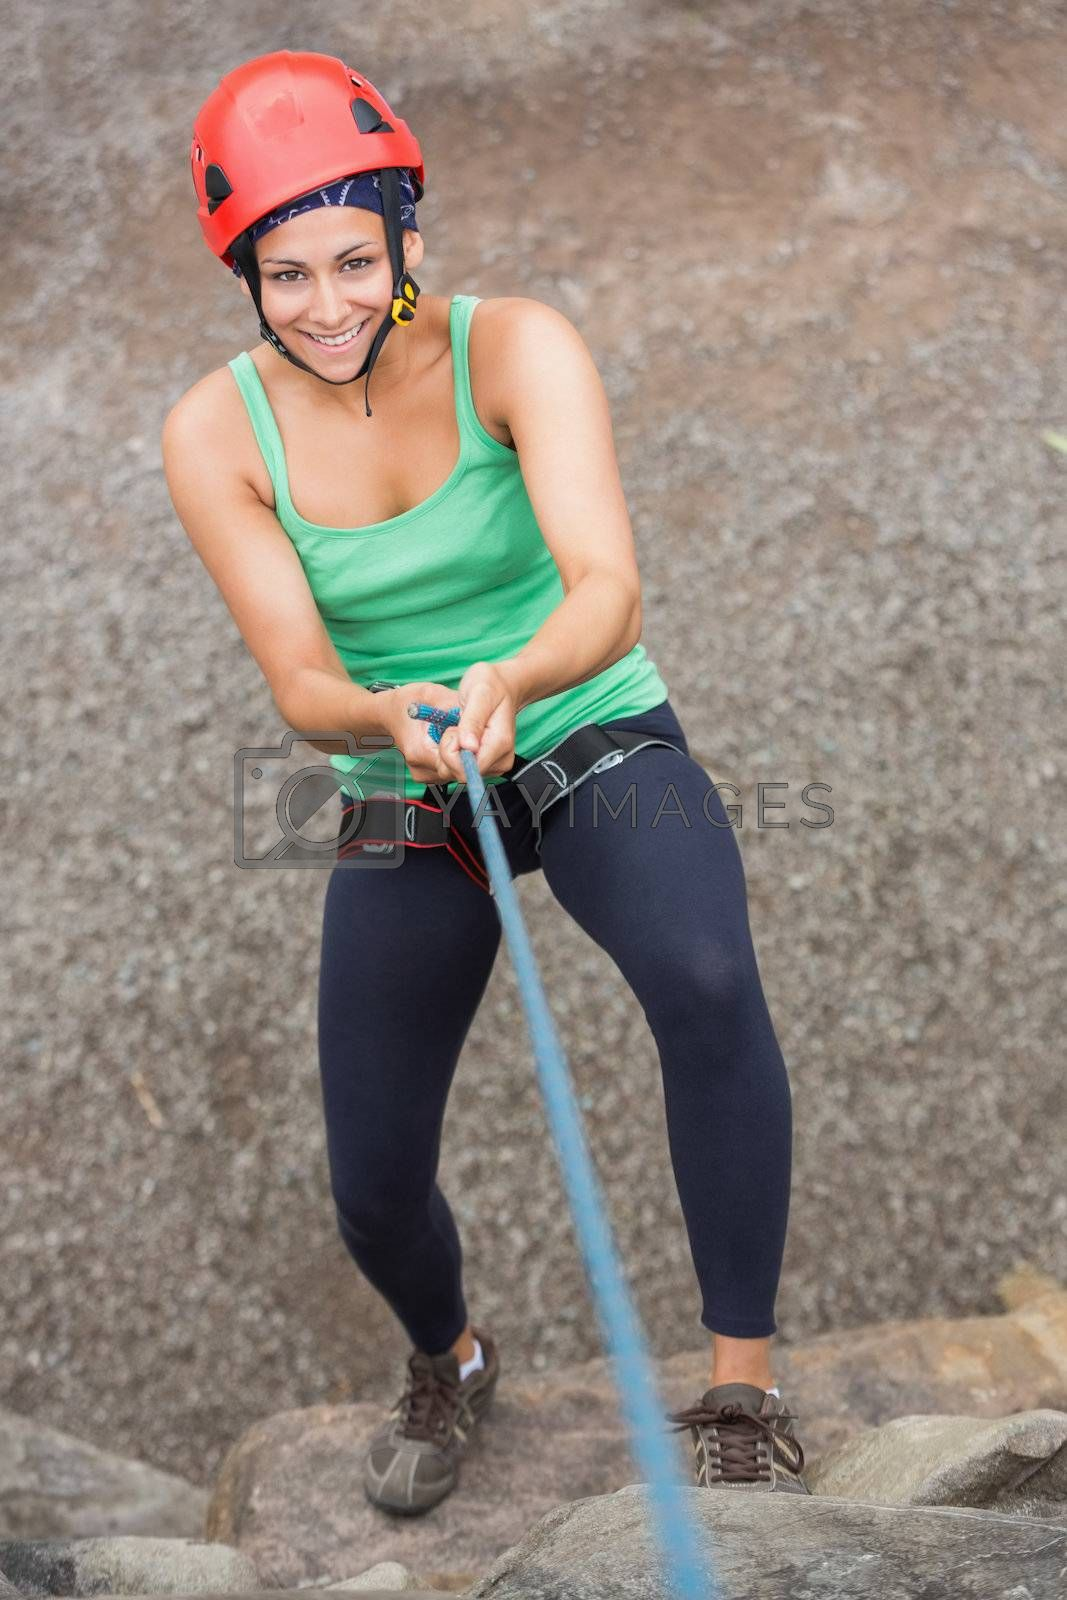 Smiling girl abseiling down rock face  by Wavebreakmedia